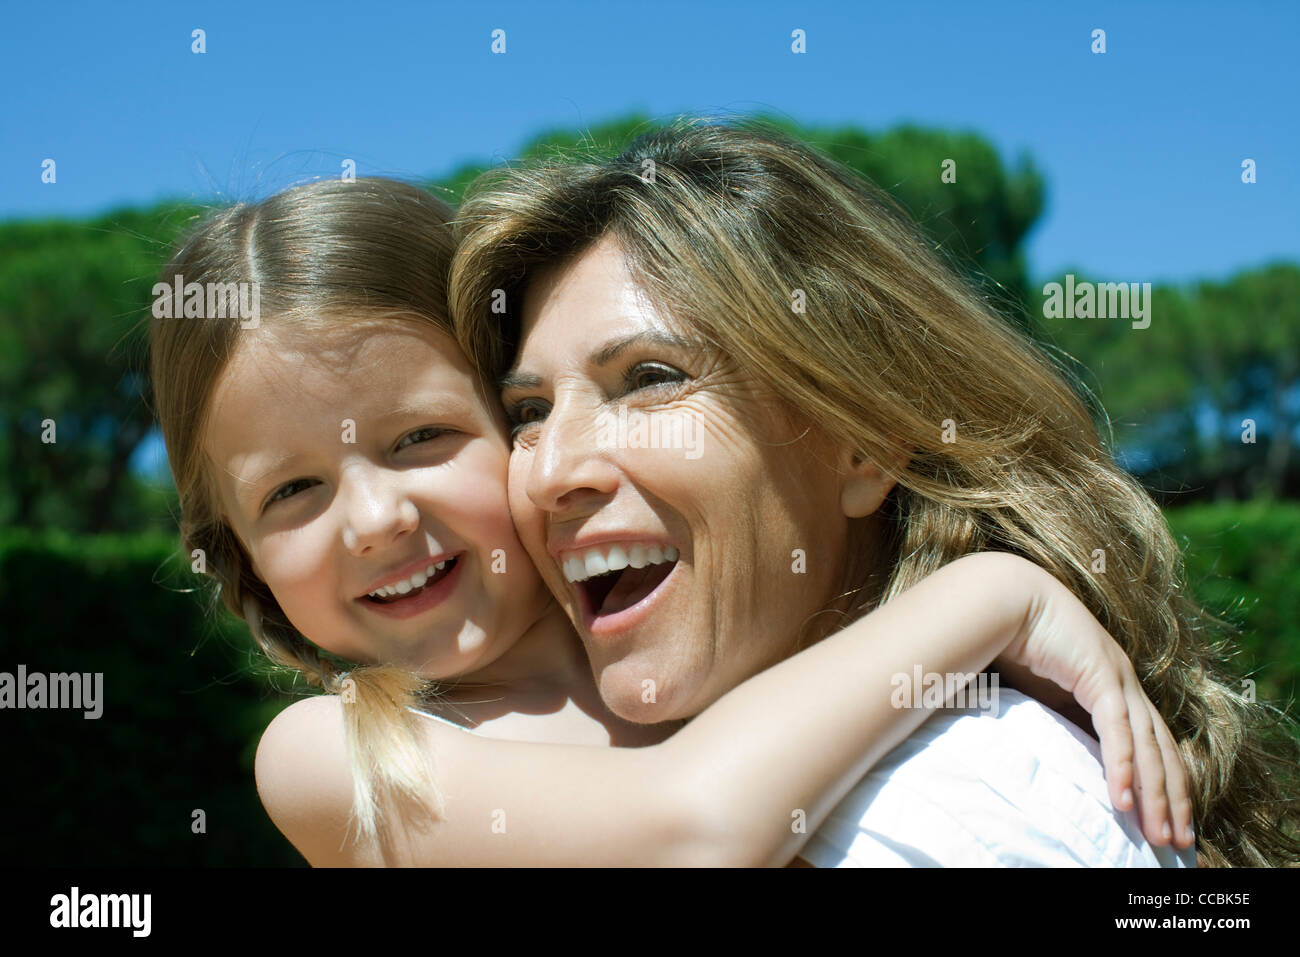 Happy mother and daughter embracing - Stock Image